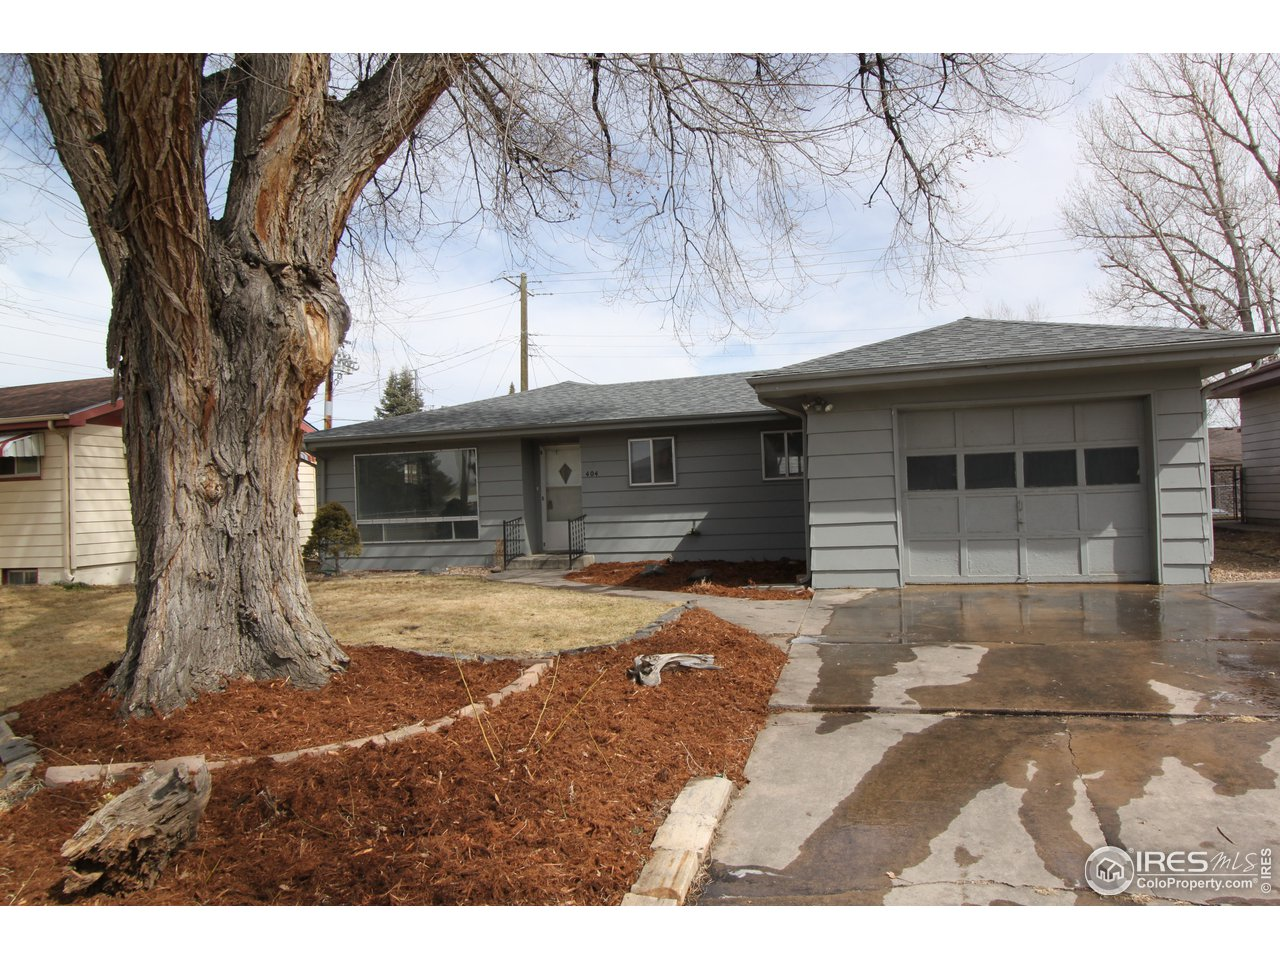 404 35TH AVE CT, GREELEY, CO 80634